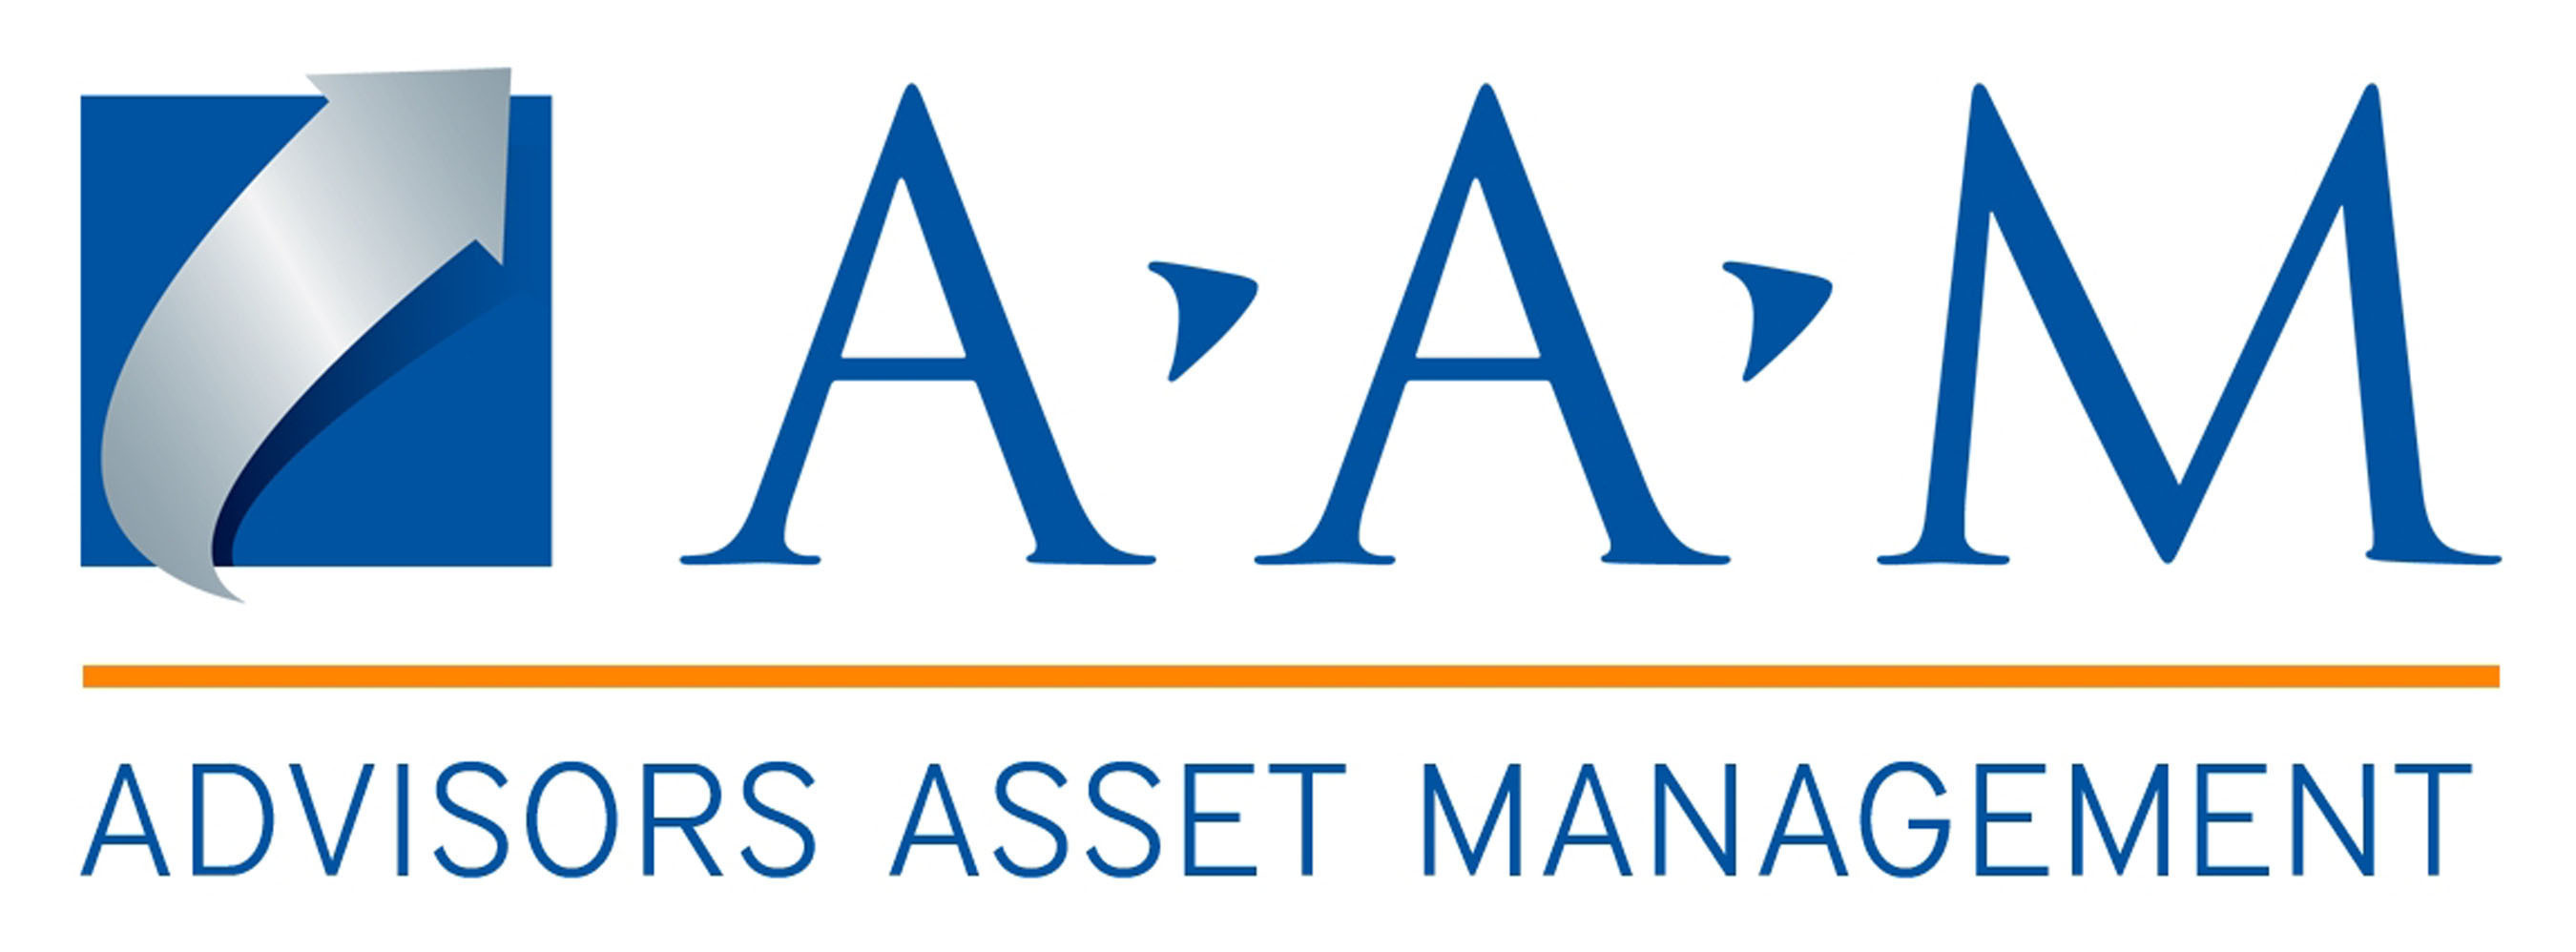 Advisors Asset Management (AAM). For more than 30 years, AAM has been a trusted investment solutions partner for financial advisors and broker/dealers. It offers access to UITs, open- and closed-end mutual funds, separately managed accounts (SMAs), structured products, the fixed income markets, as well as portfolio analytics. AAM is a broker/dealer, member FINRA/SIPC and SEC registered investment advisor. For more information, visit www.aamlive.com .